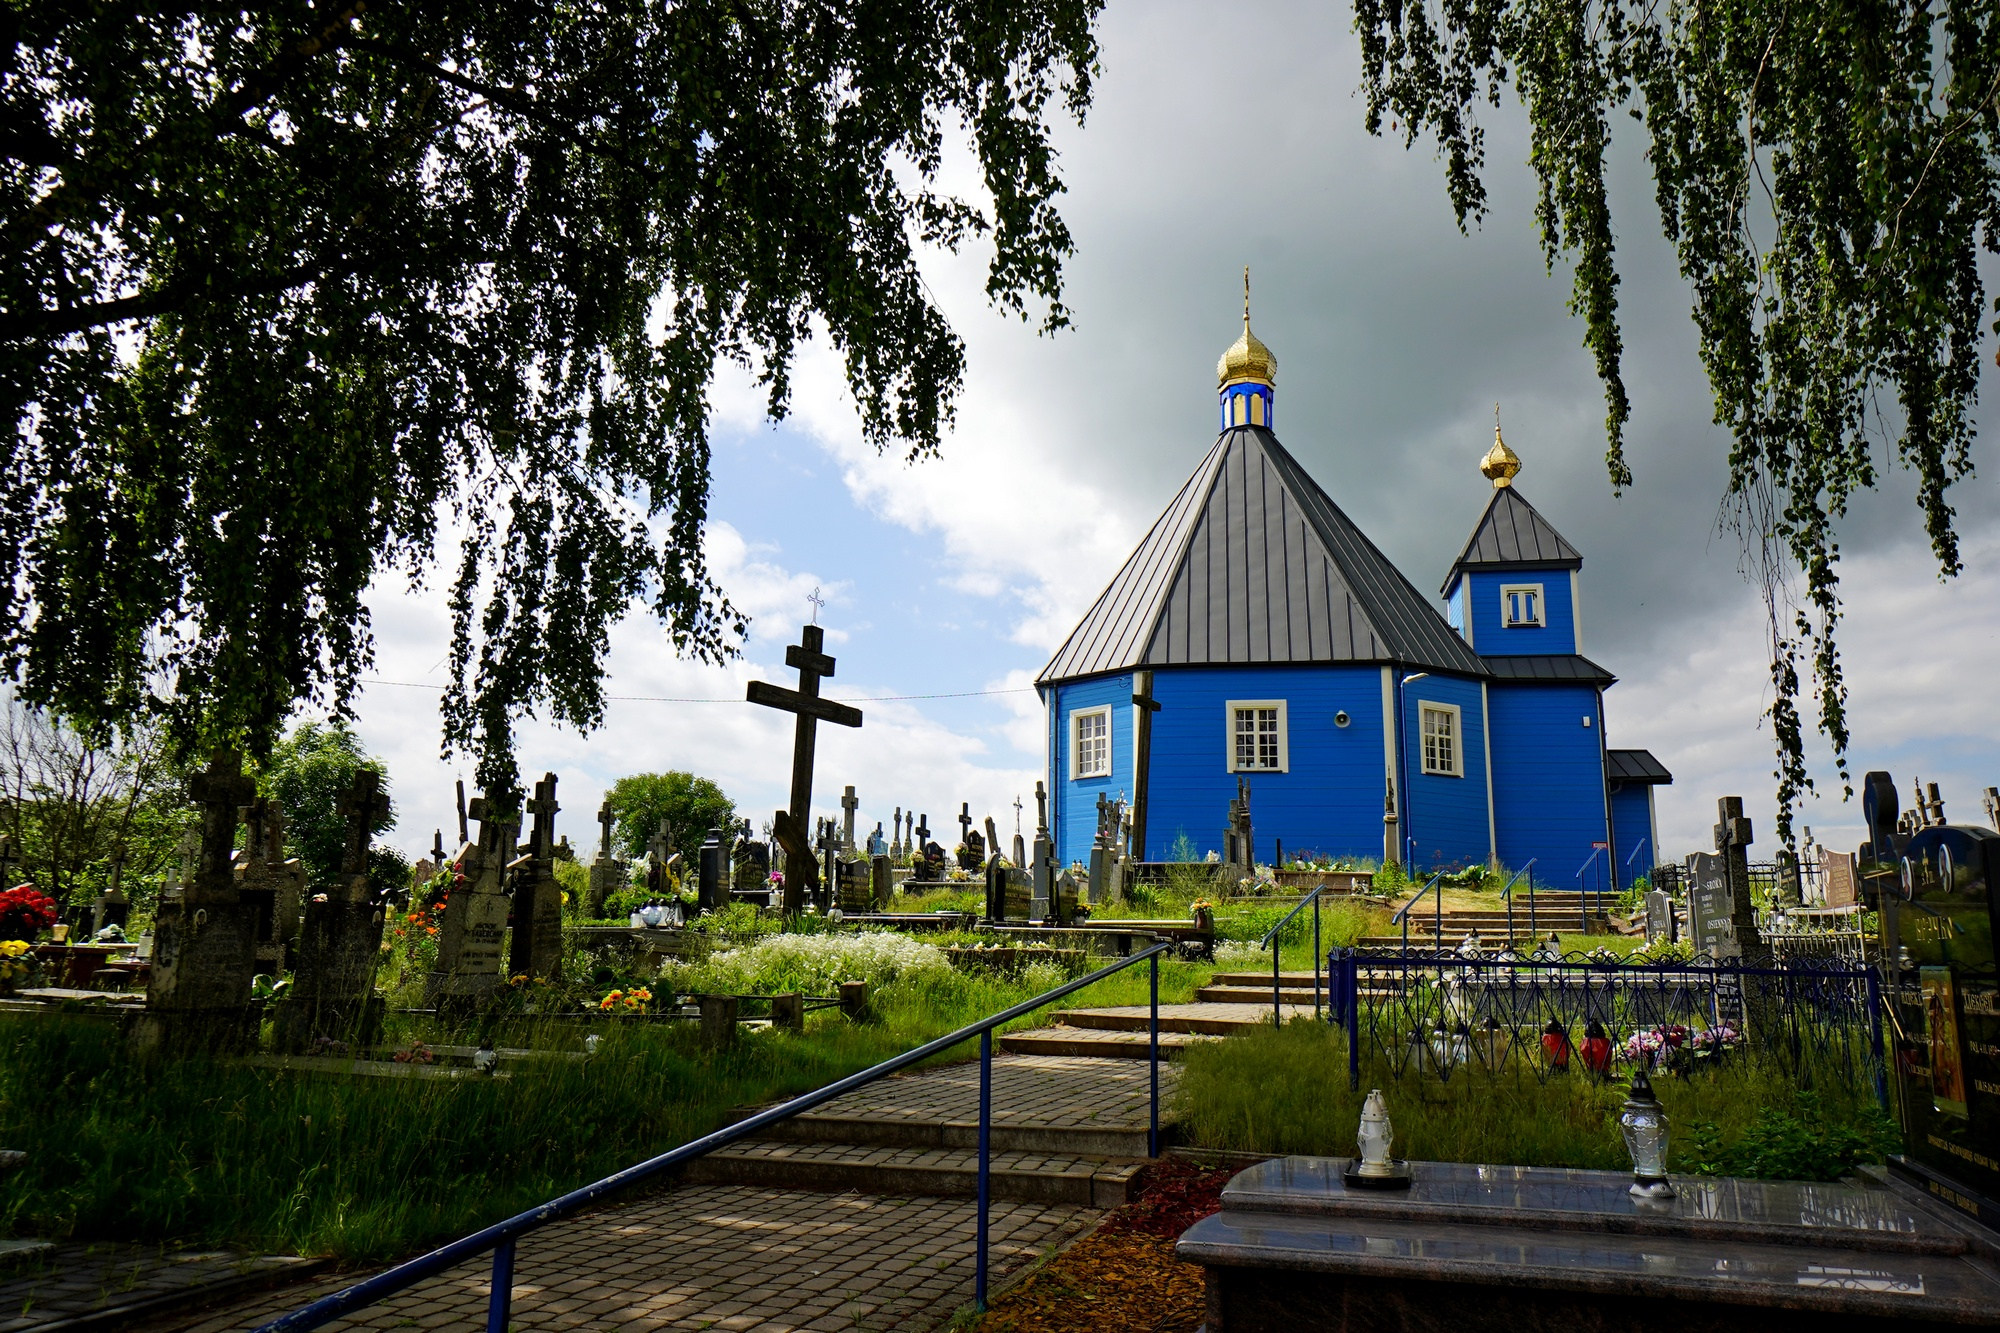 The Orthodox church in Parcewo